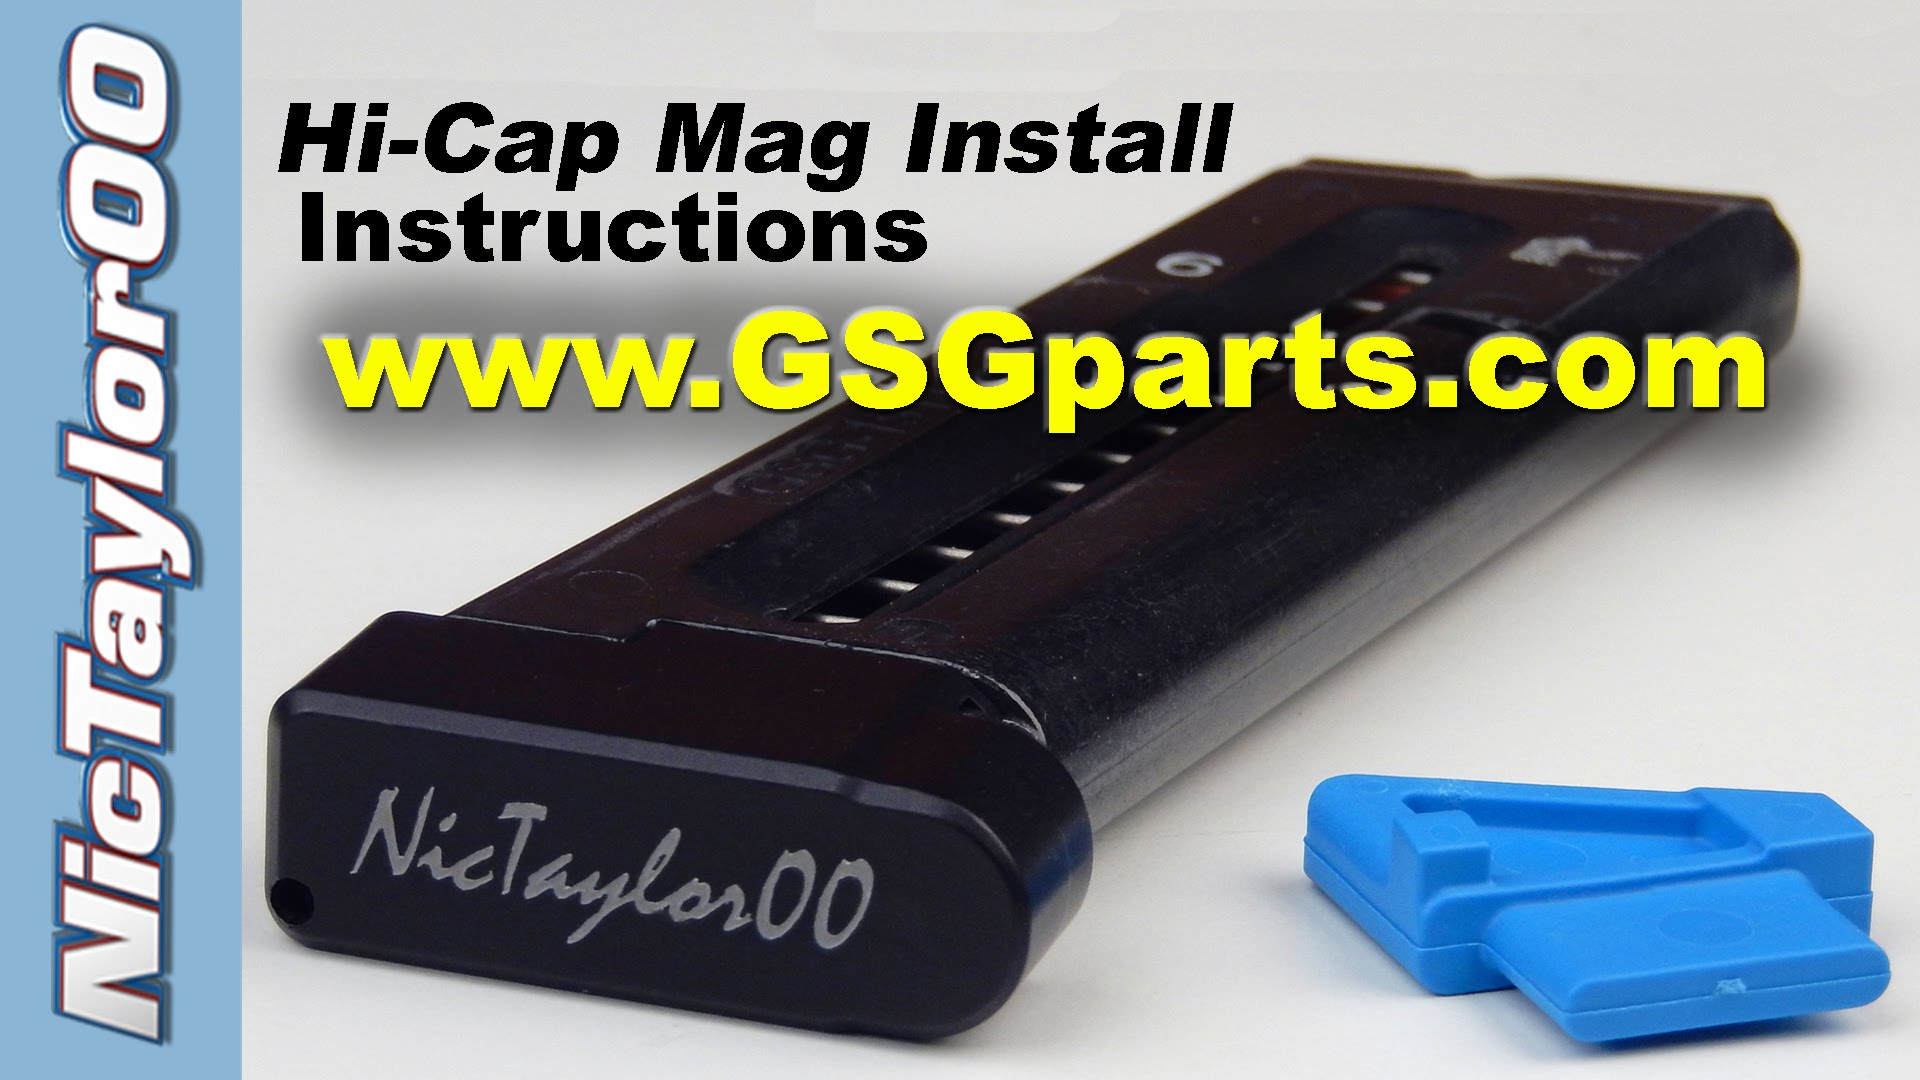 Sig 1911-22 & GSG 1911 Hi-Cap Magazine Intall Instructions